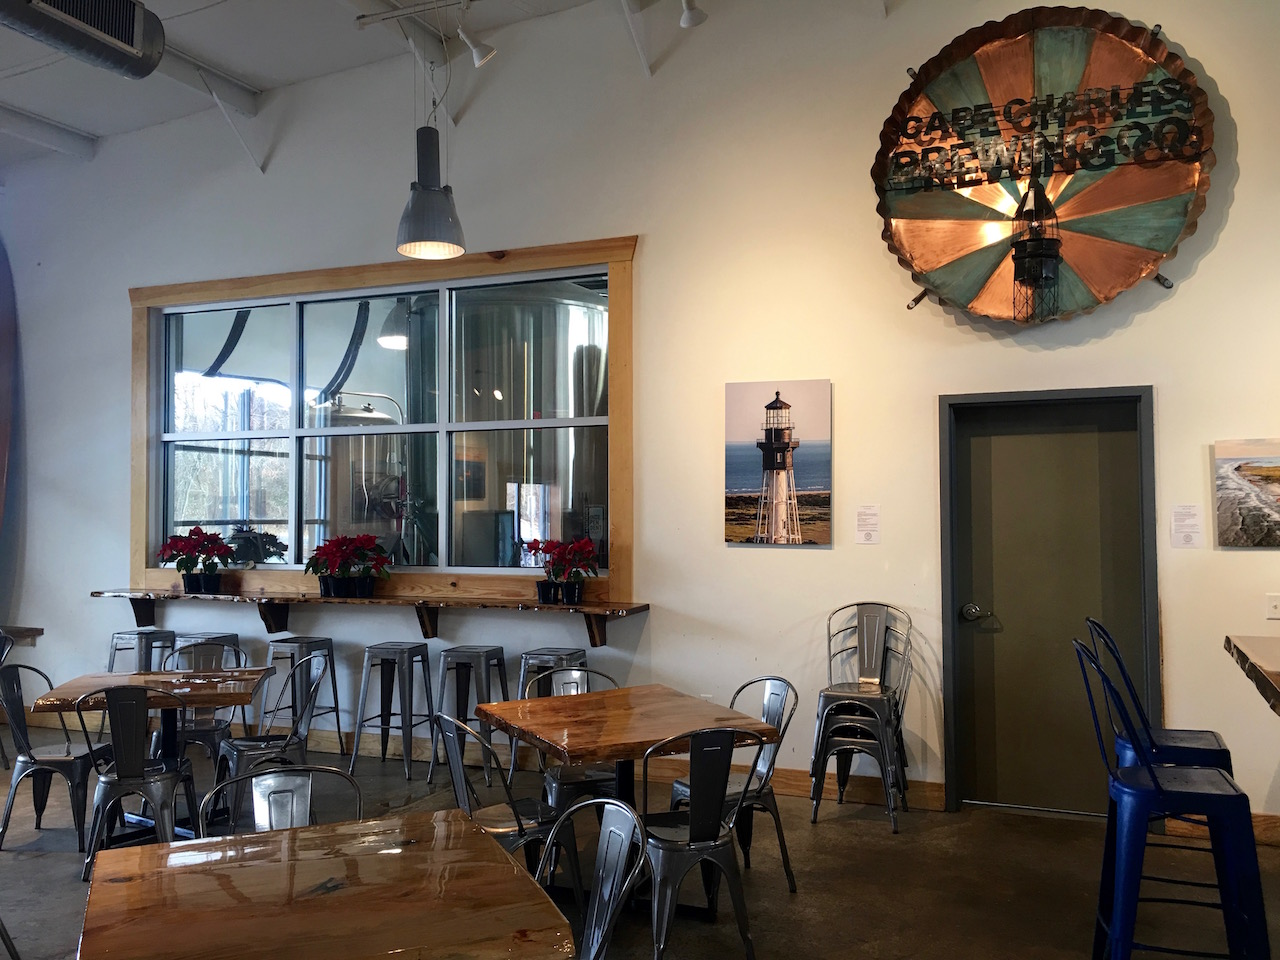 Cape Charles Brewing taproom